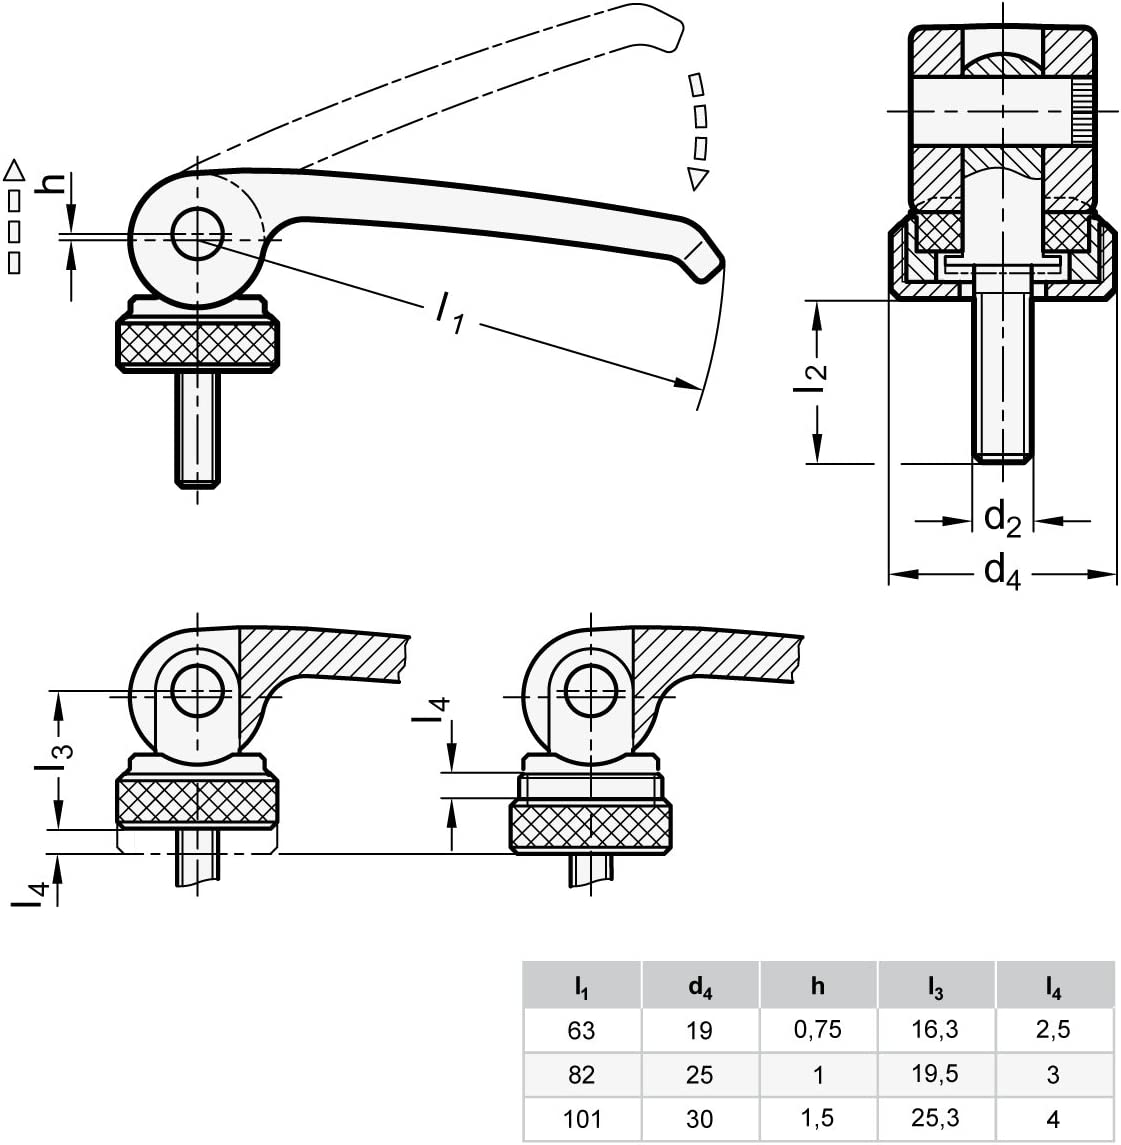 Ganter Standard Elements/  / Eccentric Clamps with Screw Pack of 1, Black, GN 927//82/ M6, 35/ A, B